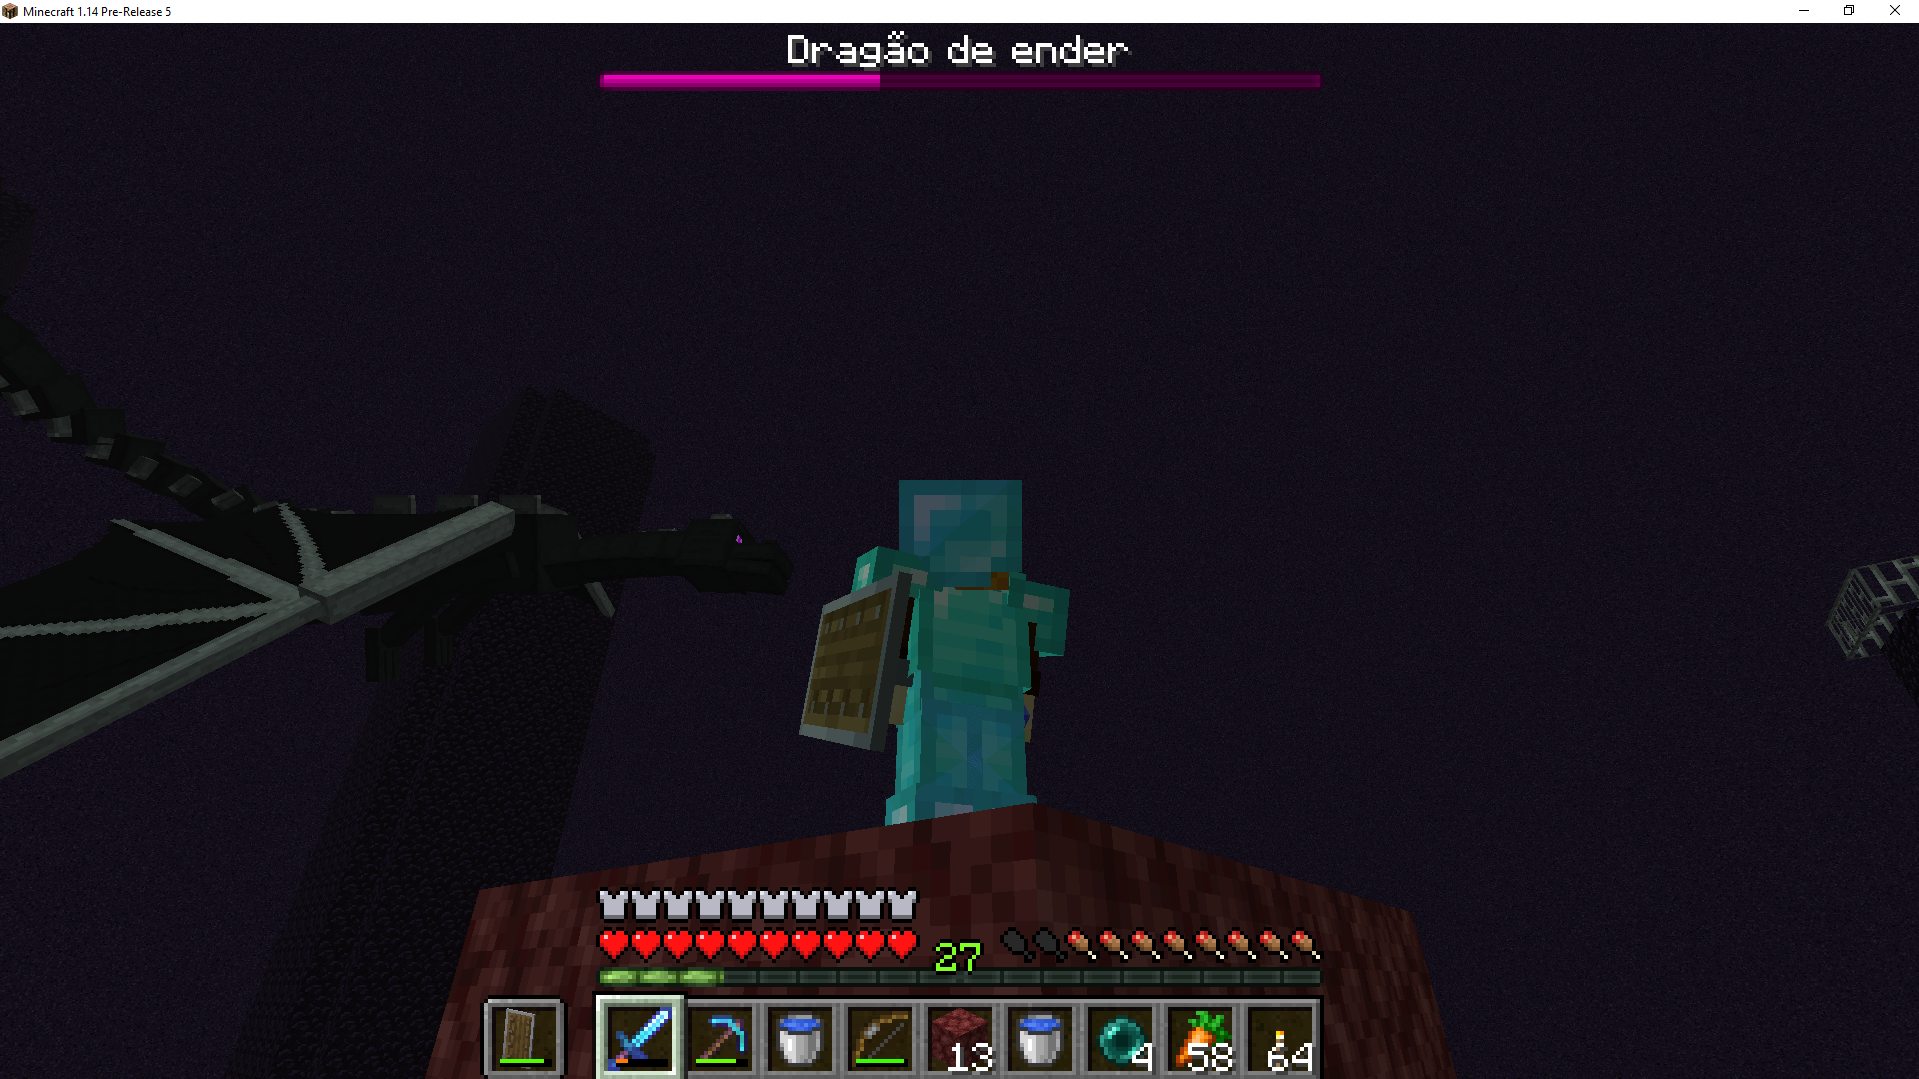 MC-148179] Ender dragon fly in circles after shooting projectile at